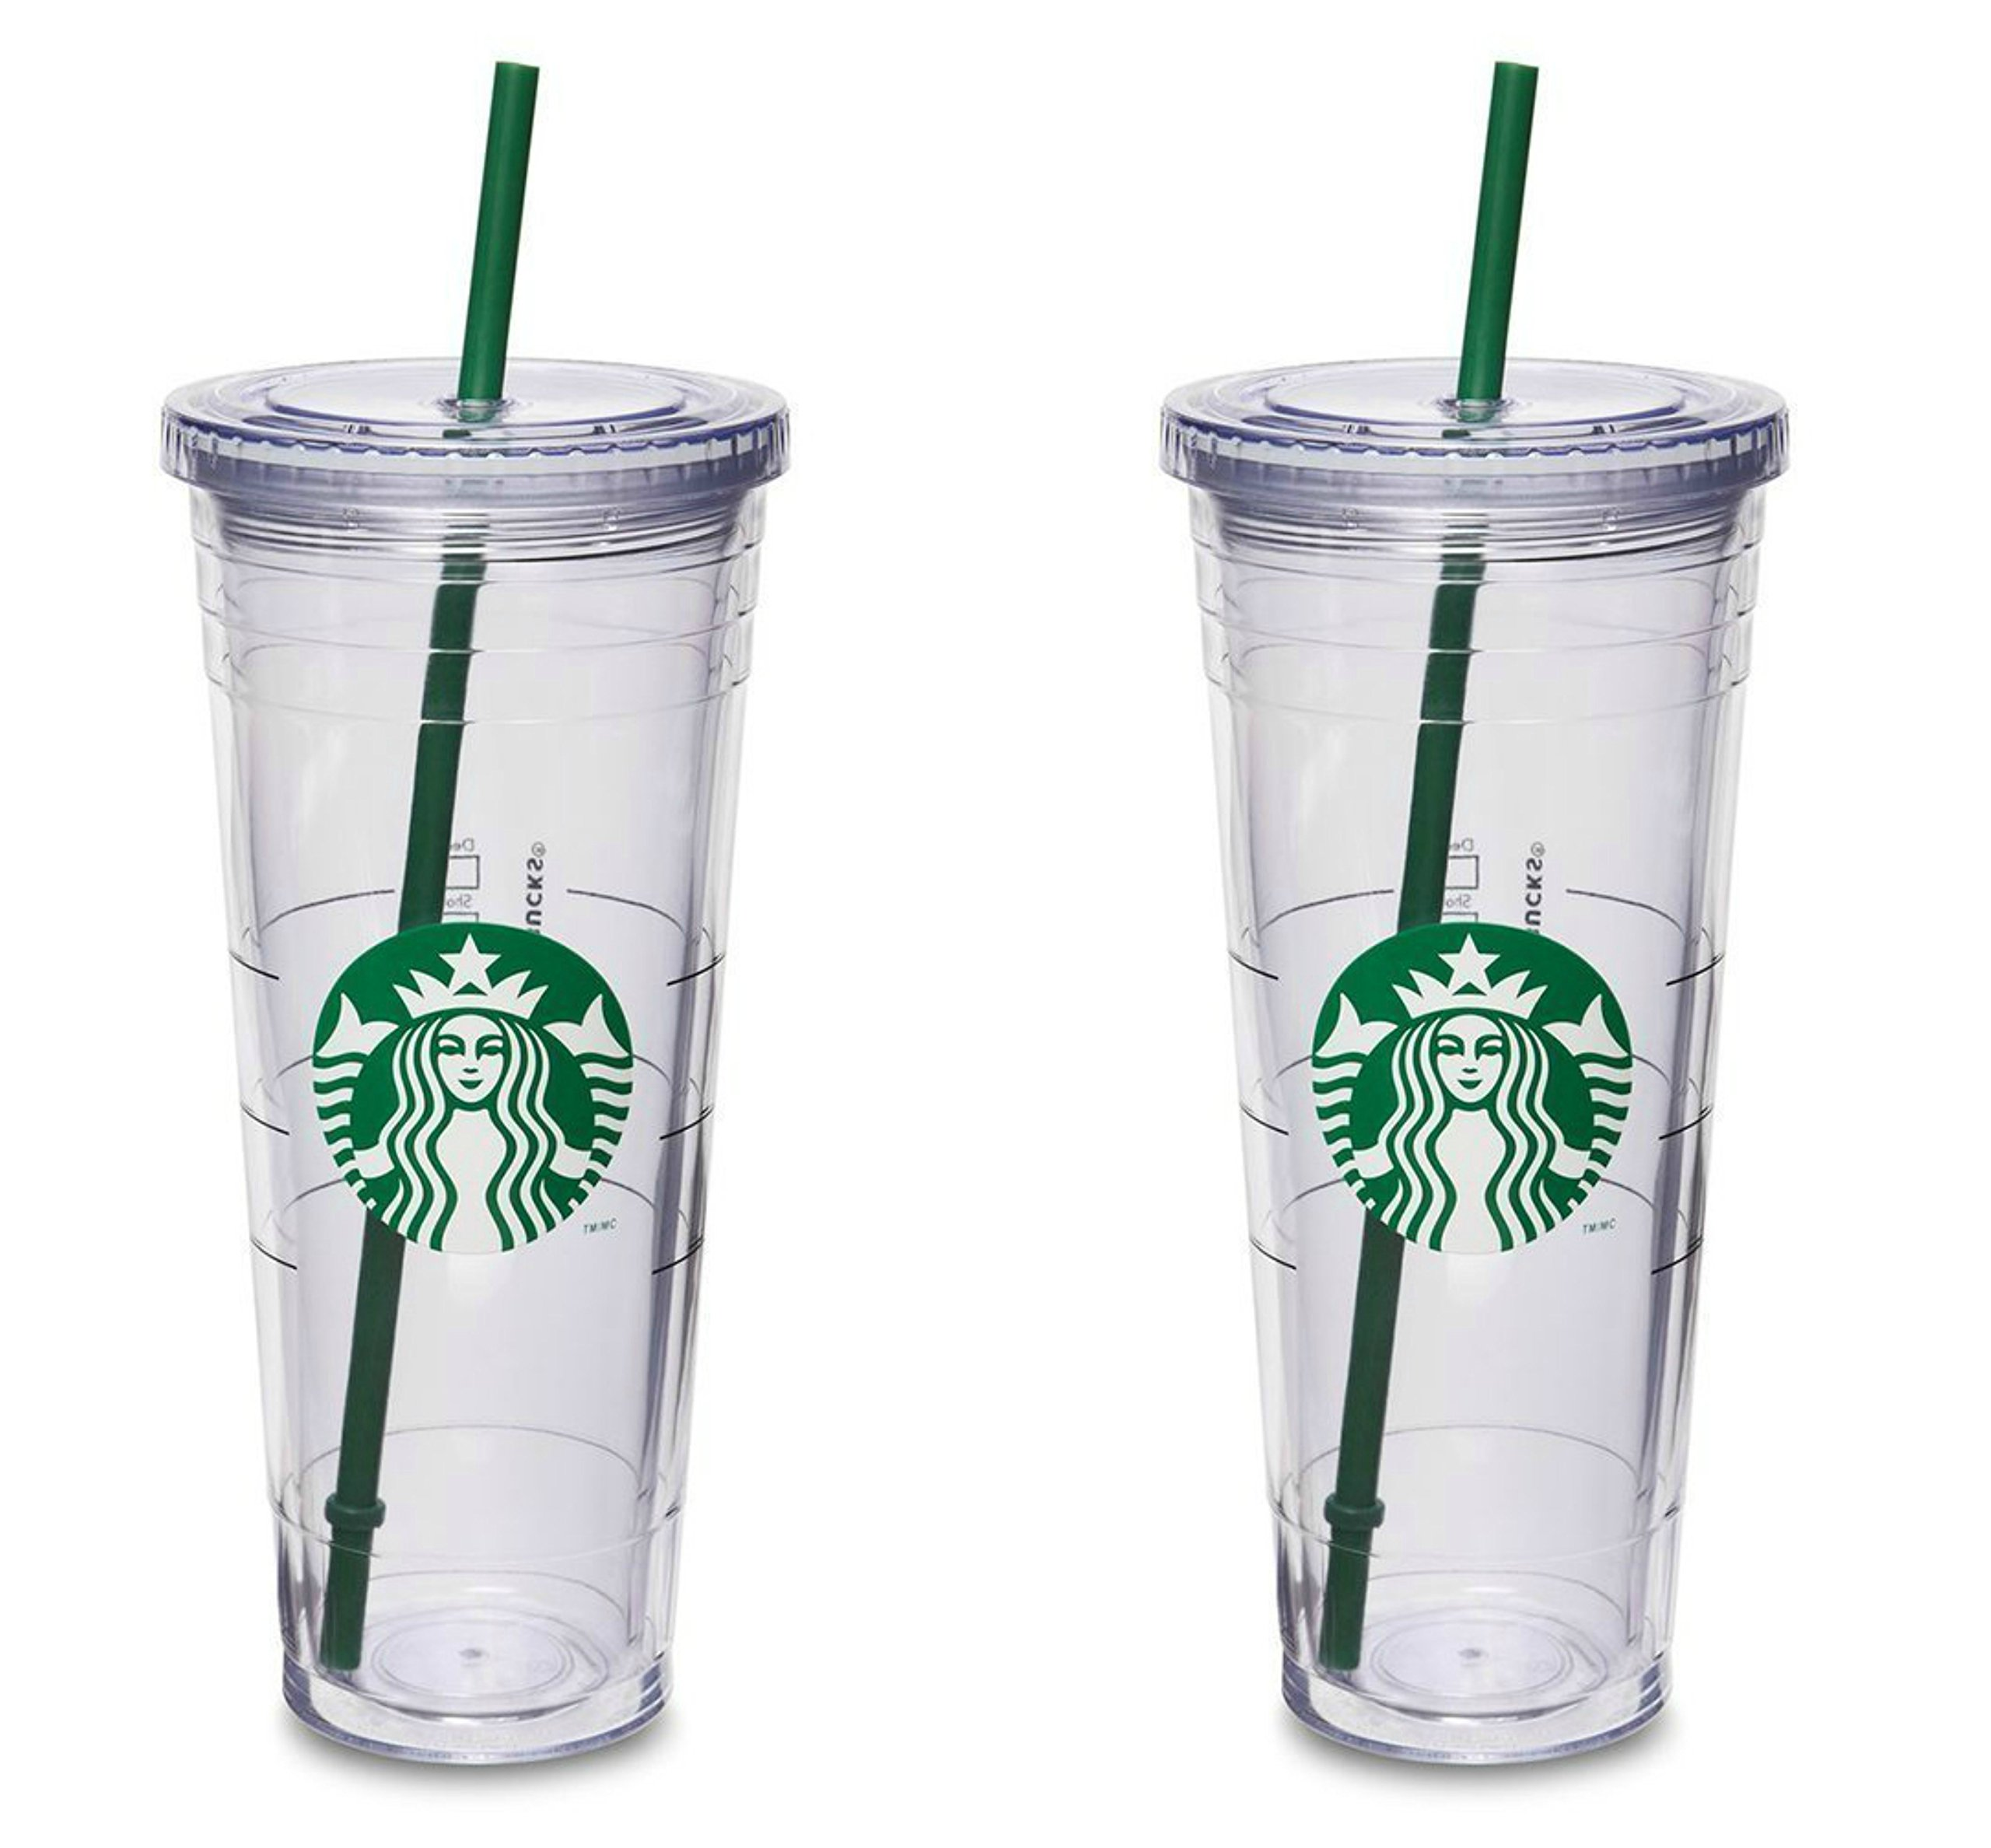 Starbucks Venti Insulated Travel Tumbler 24 OZ / Double Wall Acrylic / 2 Pack Set by Starbucks